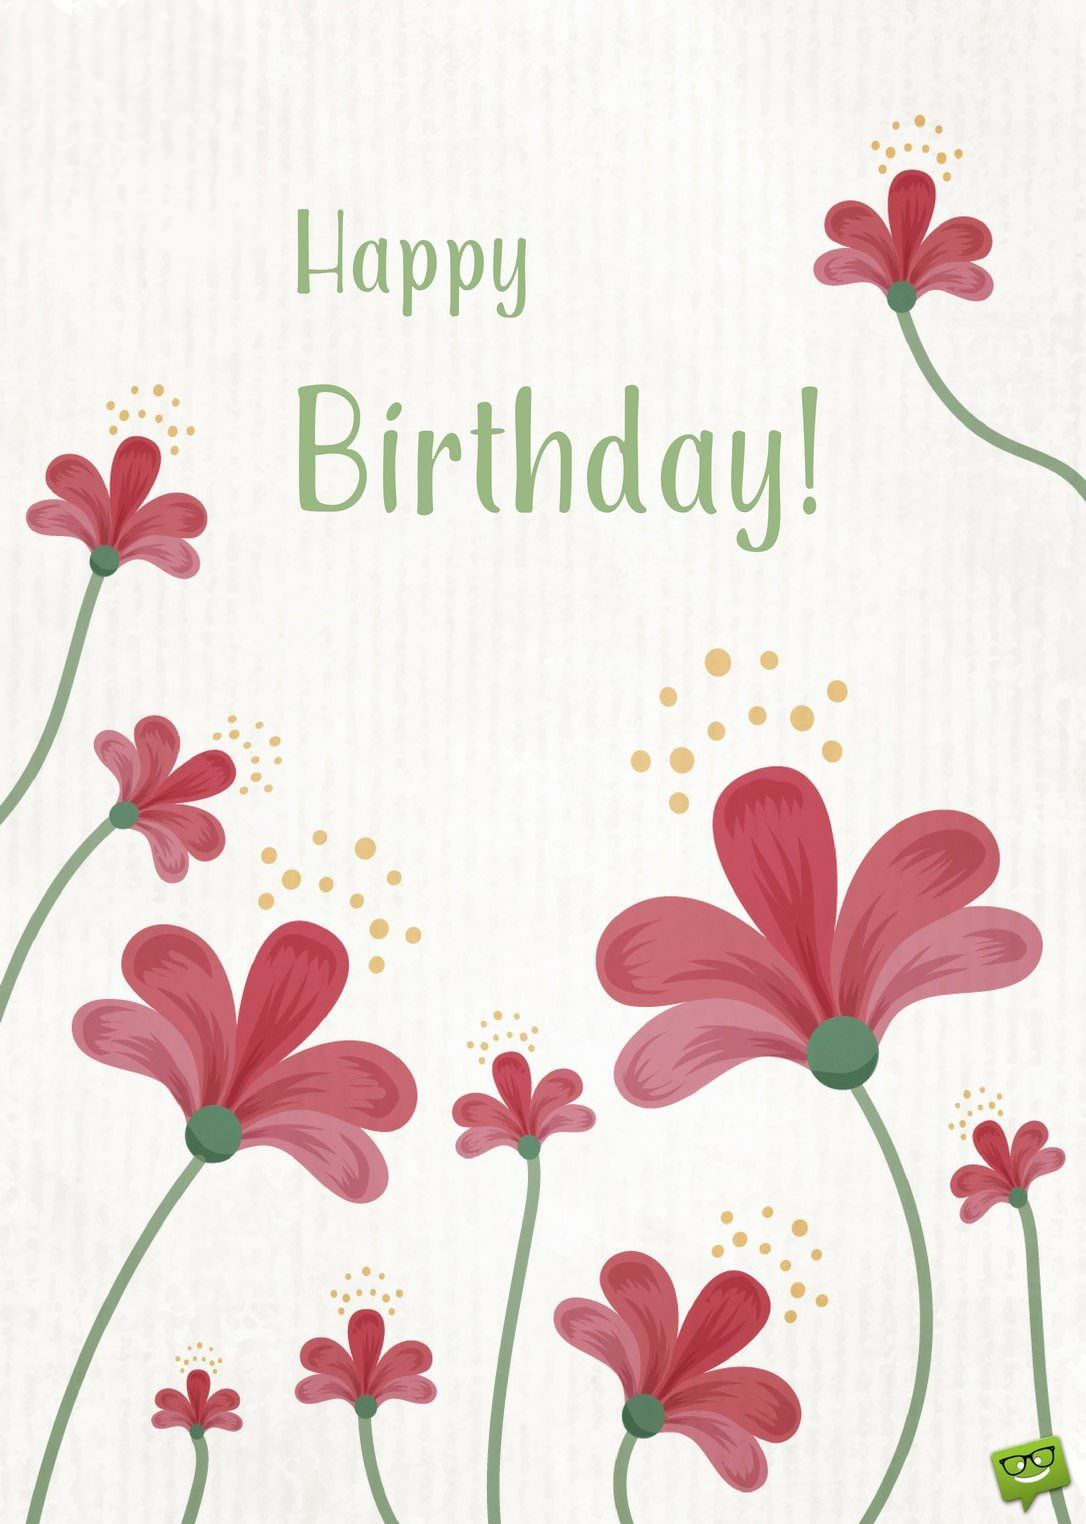 Happy Birthday Wish With Cute Red Flowers Blogdescrpition